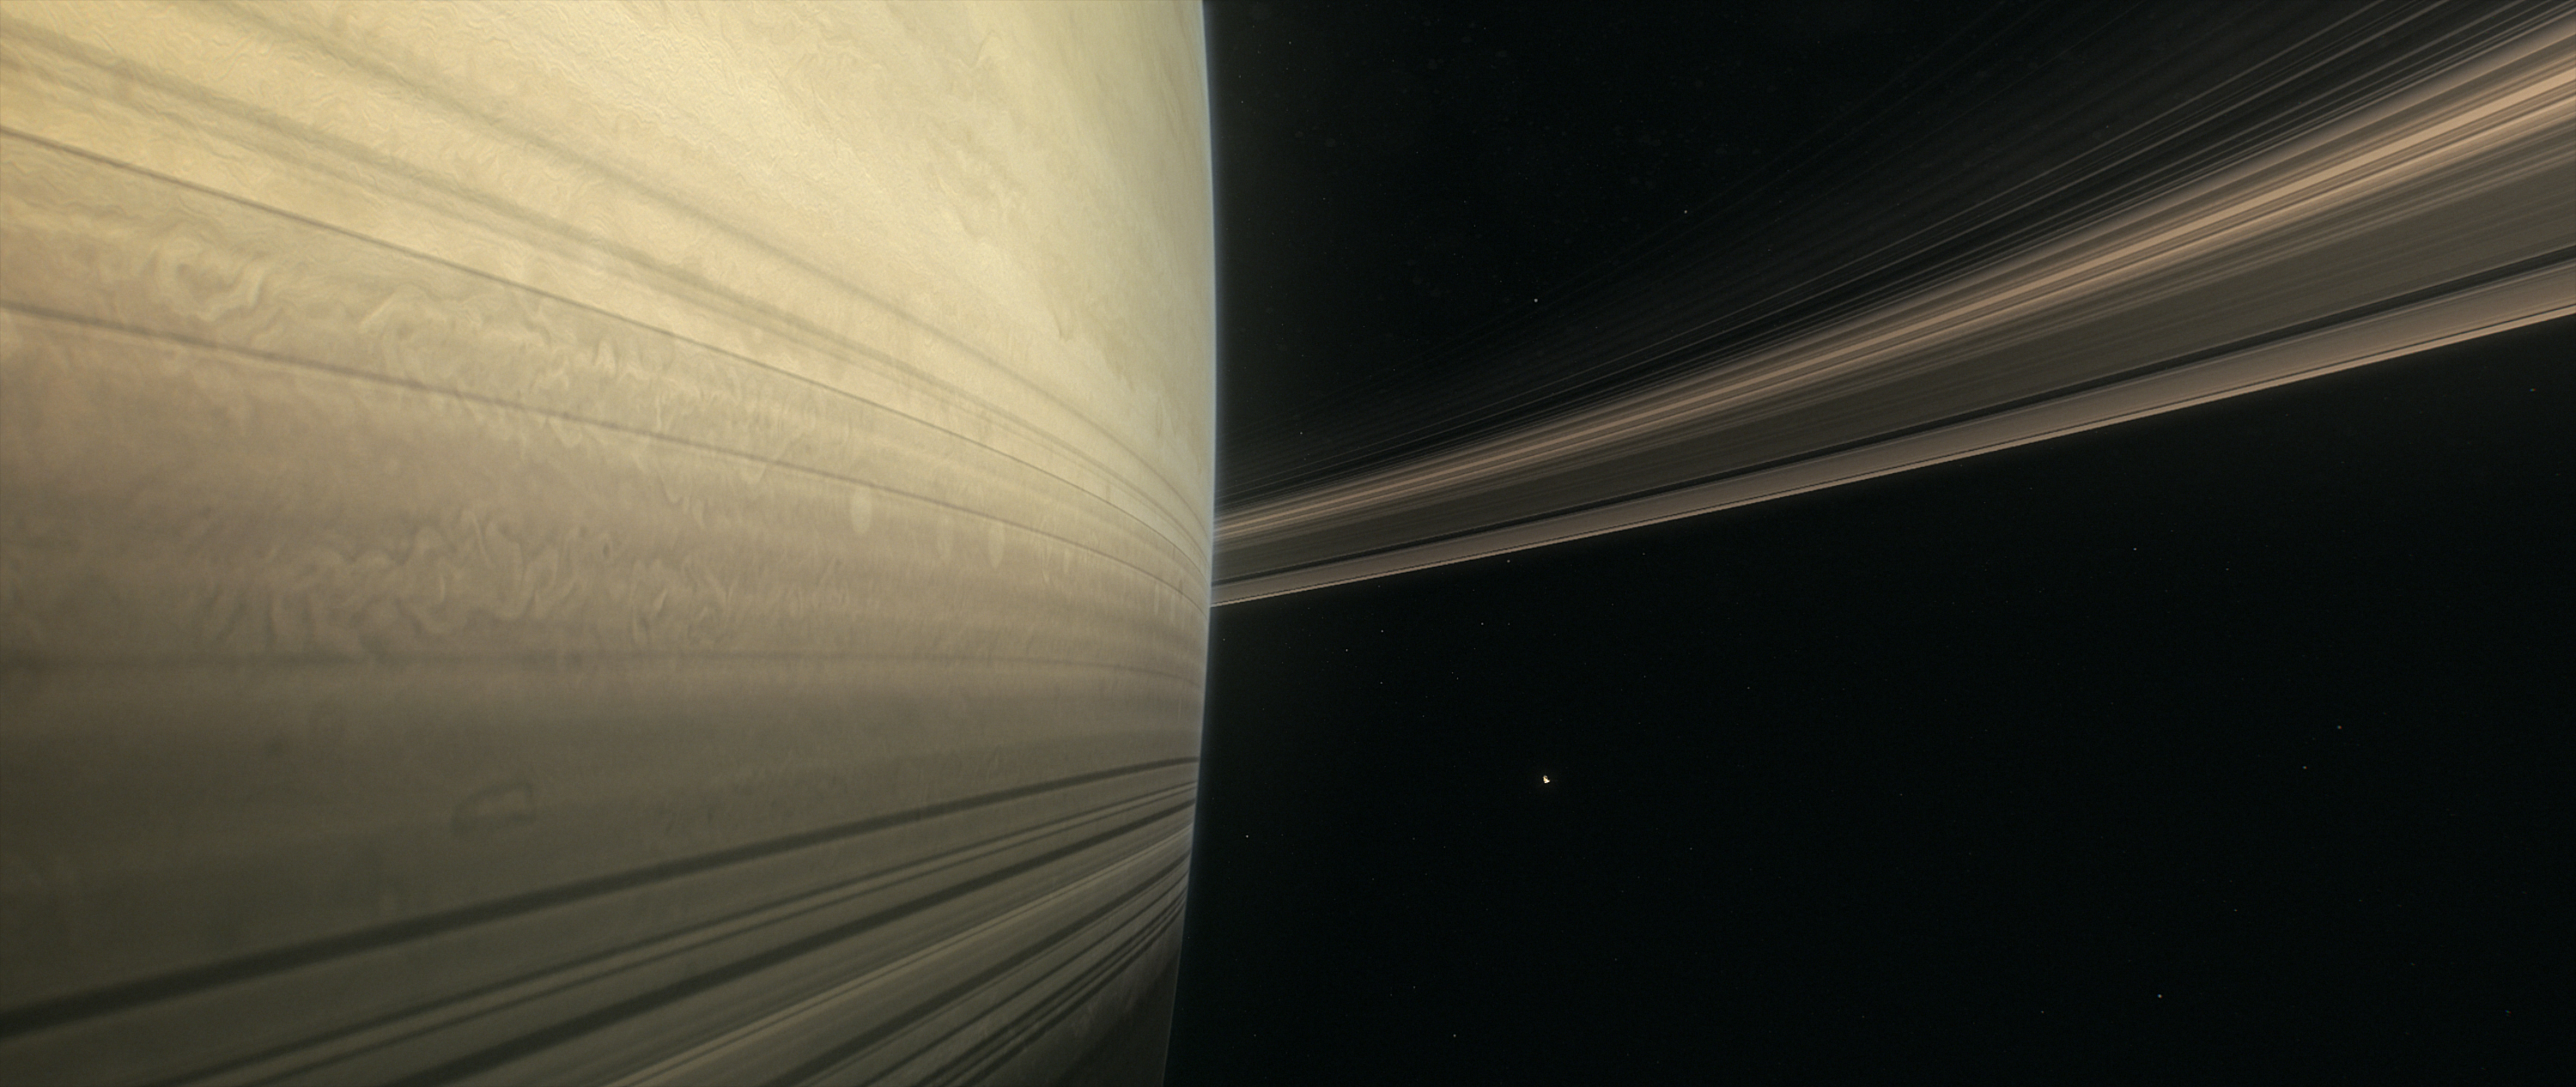 Illustration of the gap between Saturn and its rings.